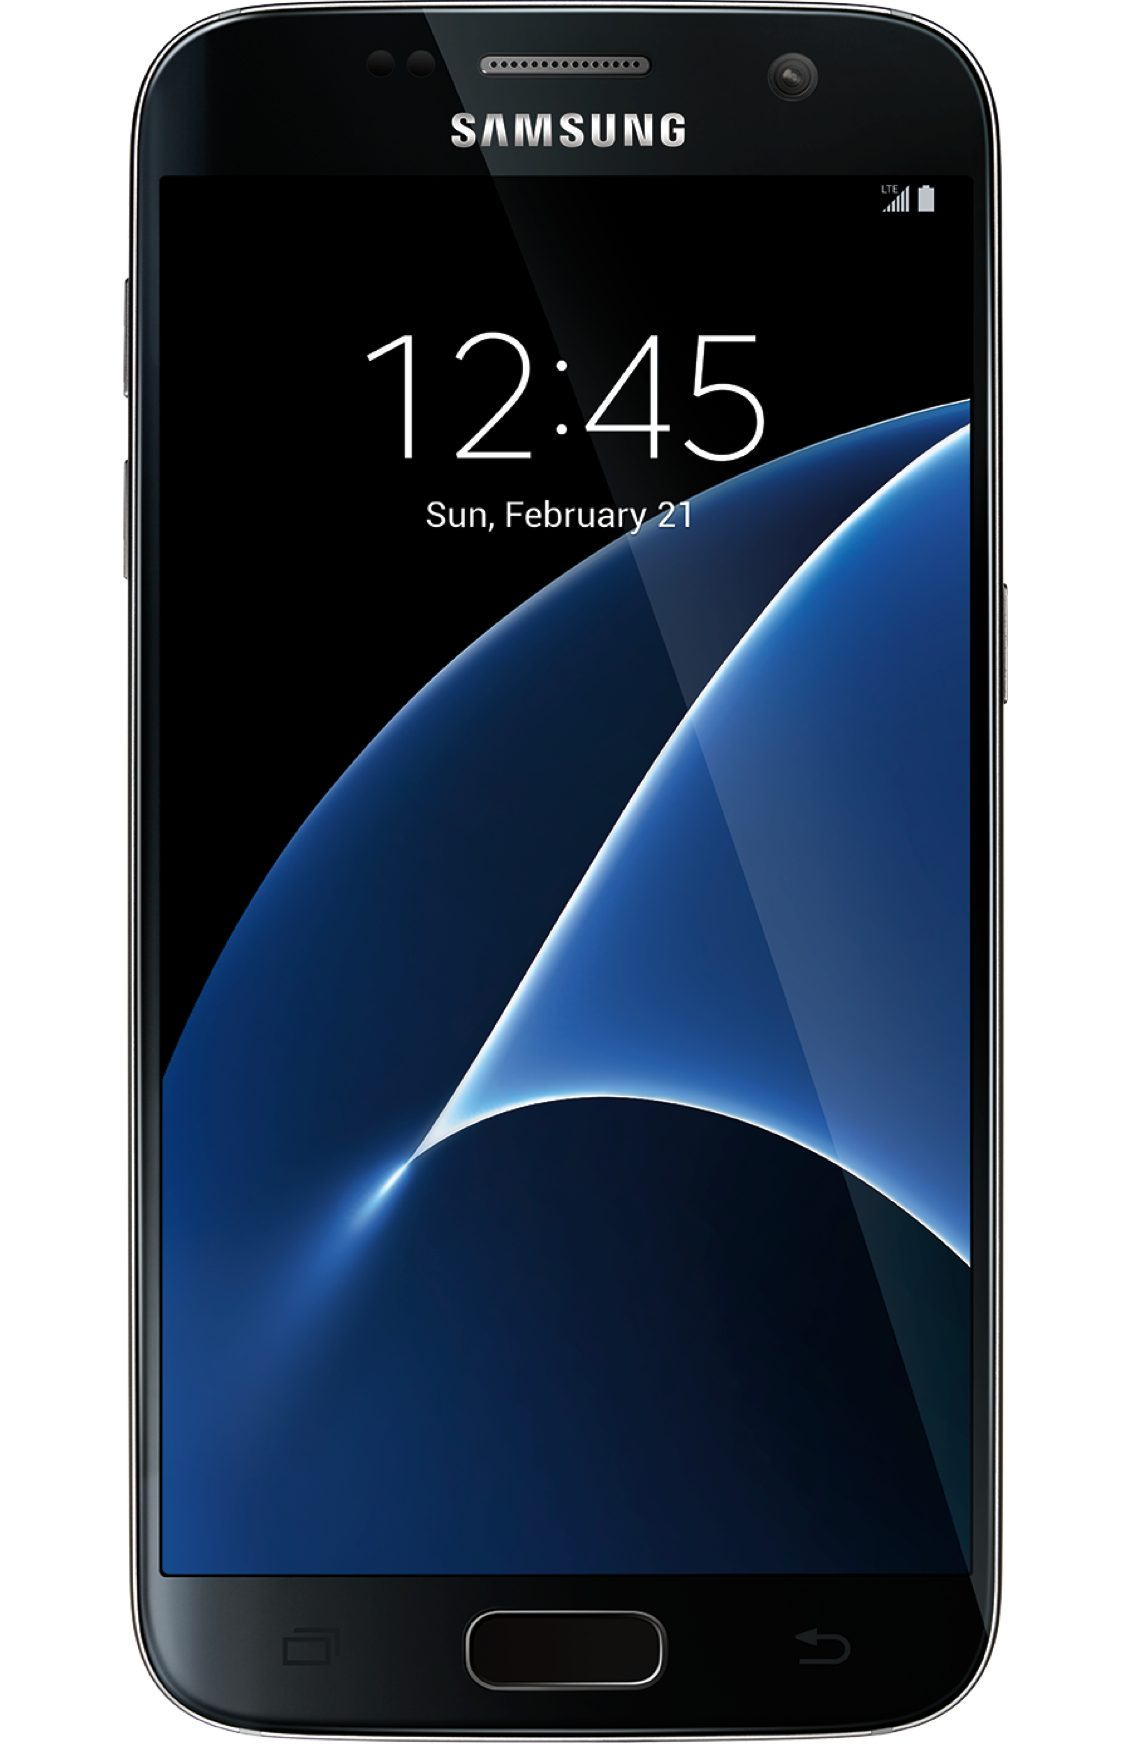 Samsung galaxy s7 features specs and reviews boost mobile galaxy s7 main image 1 stopboris Gallery